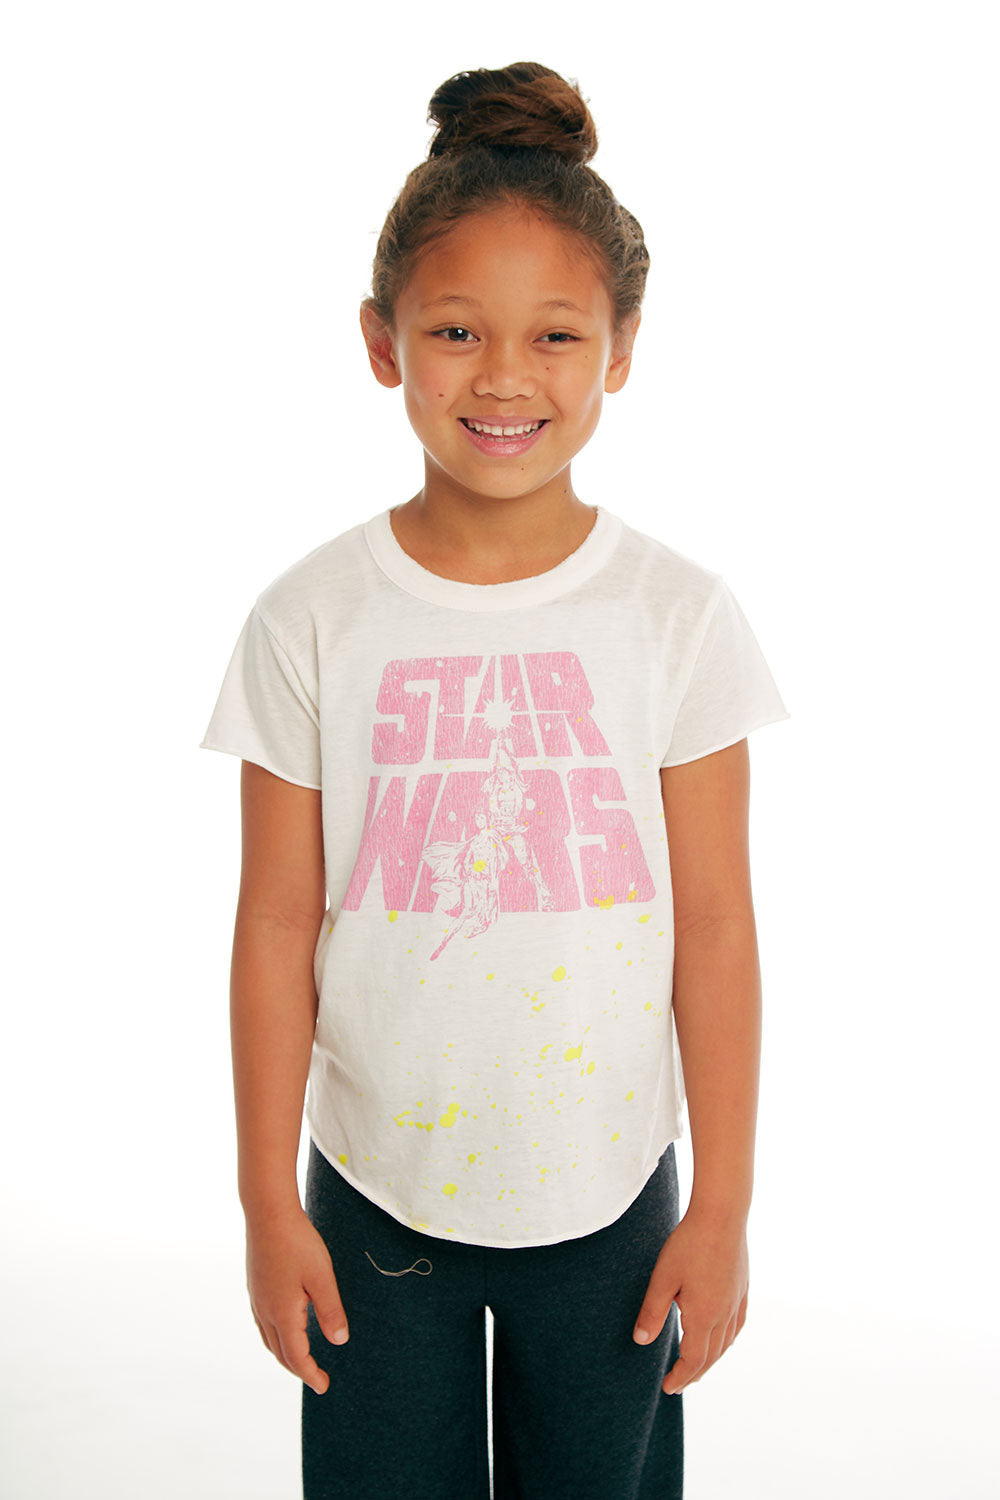 Star Wars - Star Wars Luke & Leia, GIRLS, chaserbrand.com,chaser clothing,chaser apparel,chaser los angeles